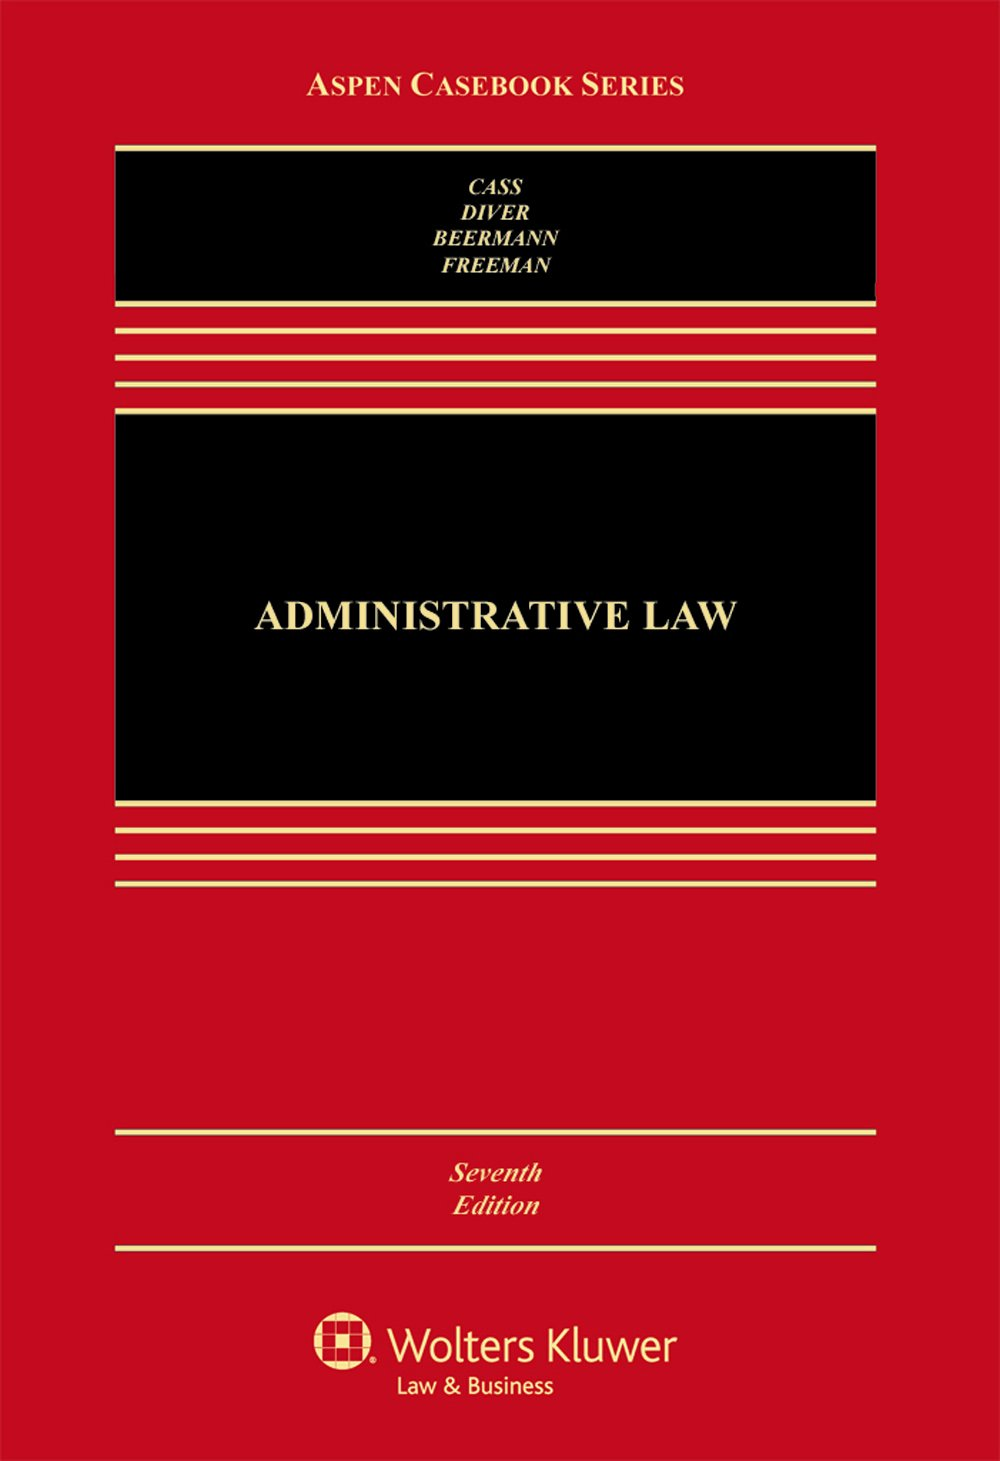 Administrative Law: Cases and Materials (Aspen Casebook Series) by Wolters Kluwer